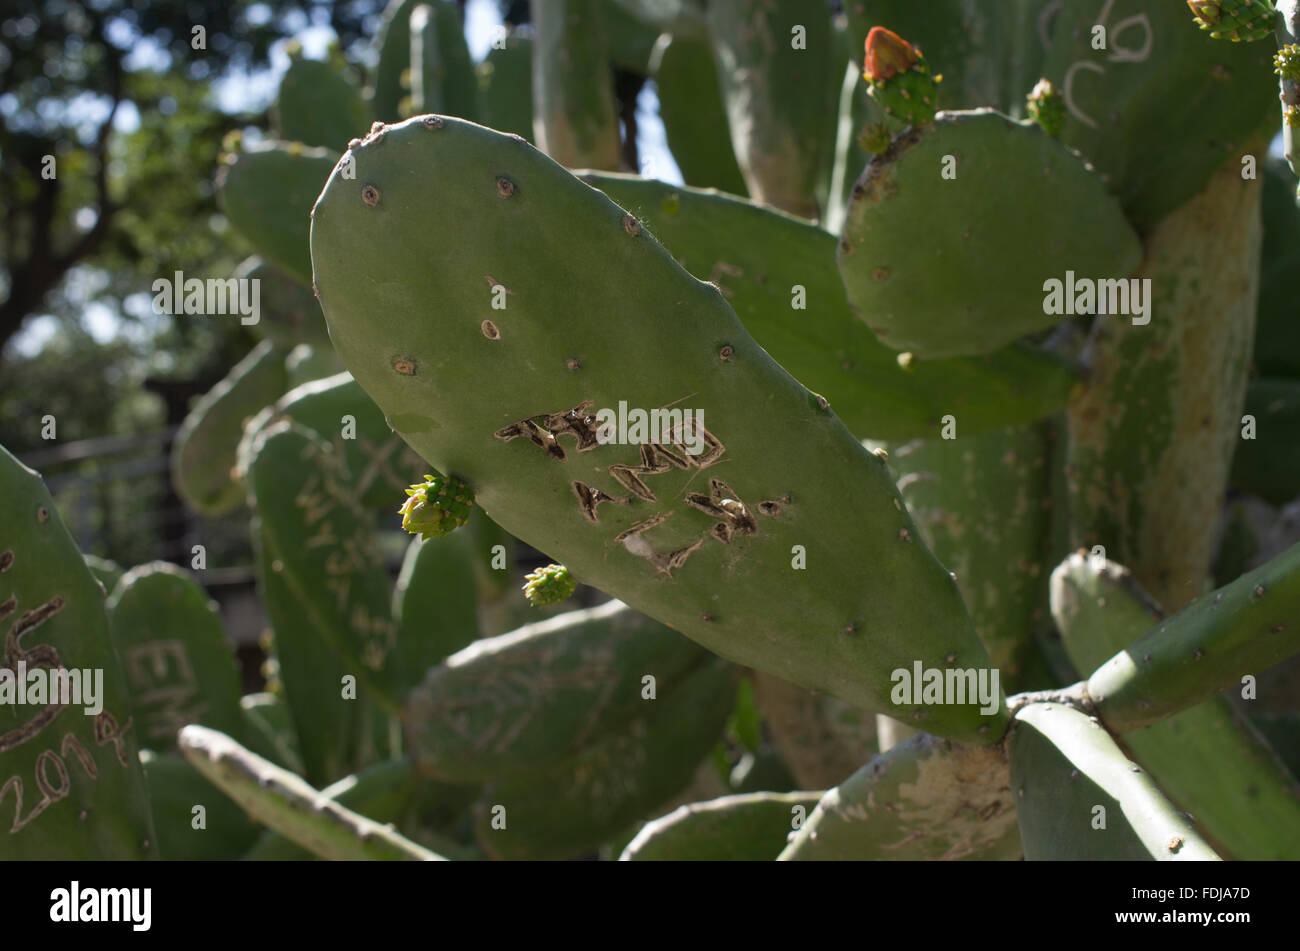 Sunlit cacti in Bolivia with graffiti in Spanish te amo e.g. I love you, engraved in one of the cactus leaves or - Stock Image